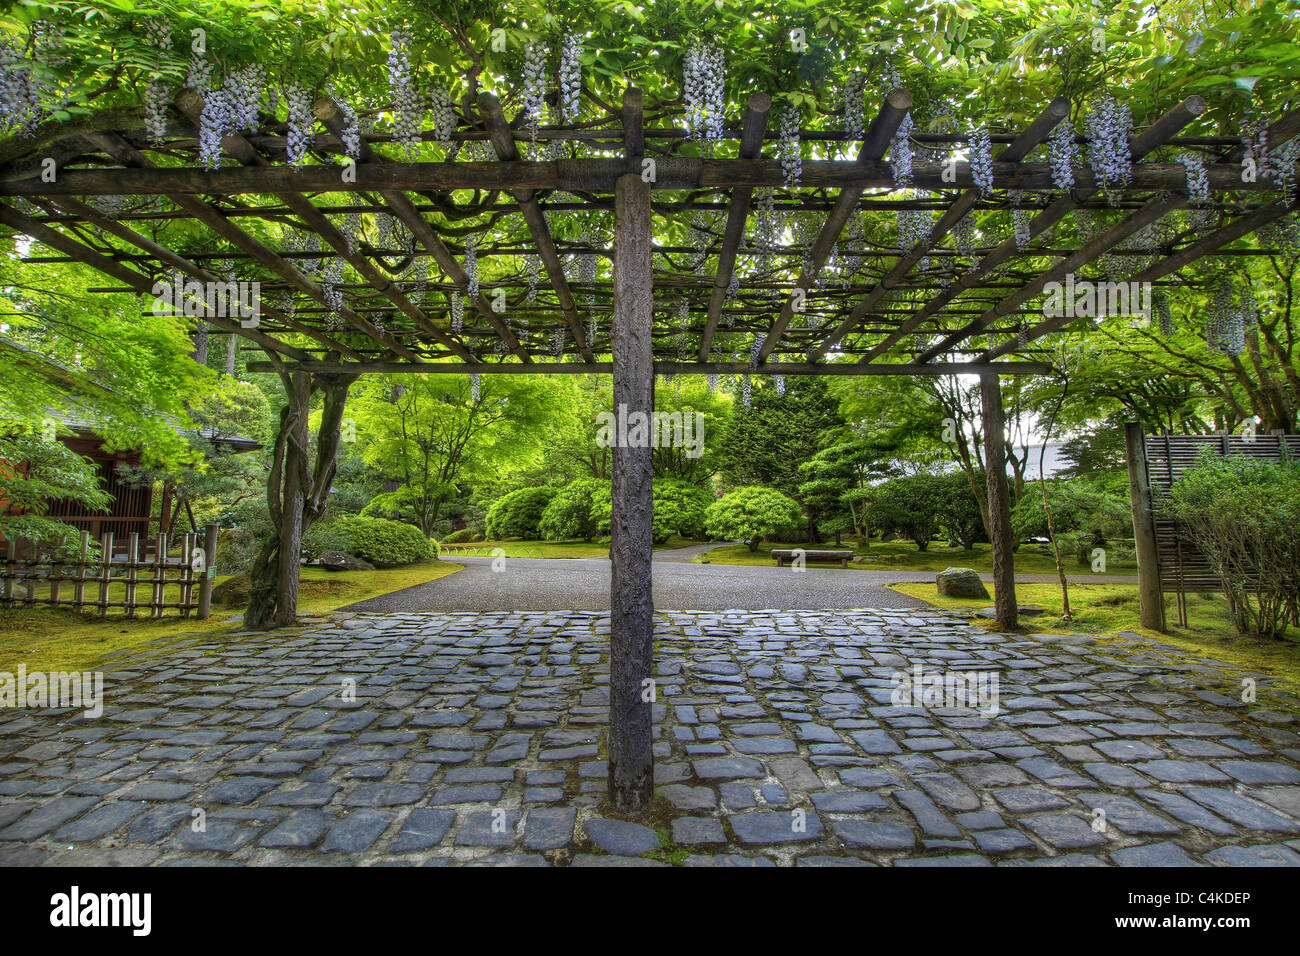 Wisteria Flowers In Bloom On Pergola At Portland Japanese Garden Stone Path